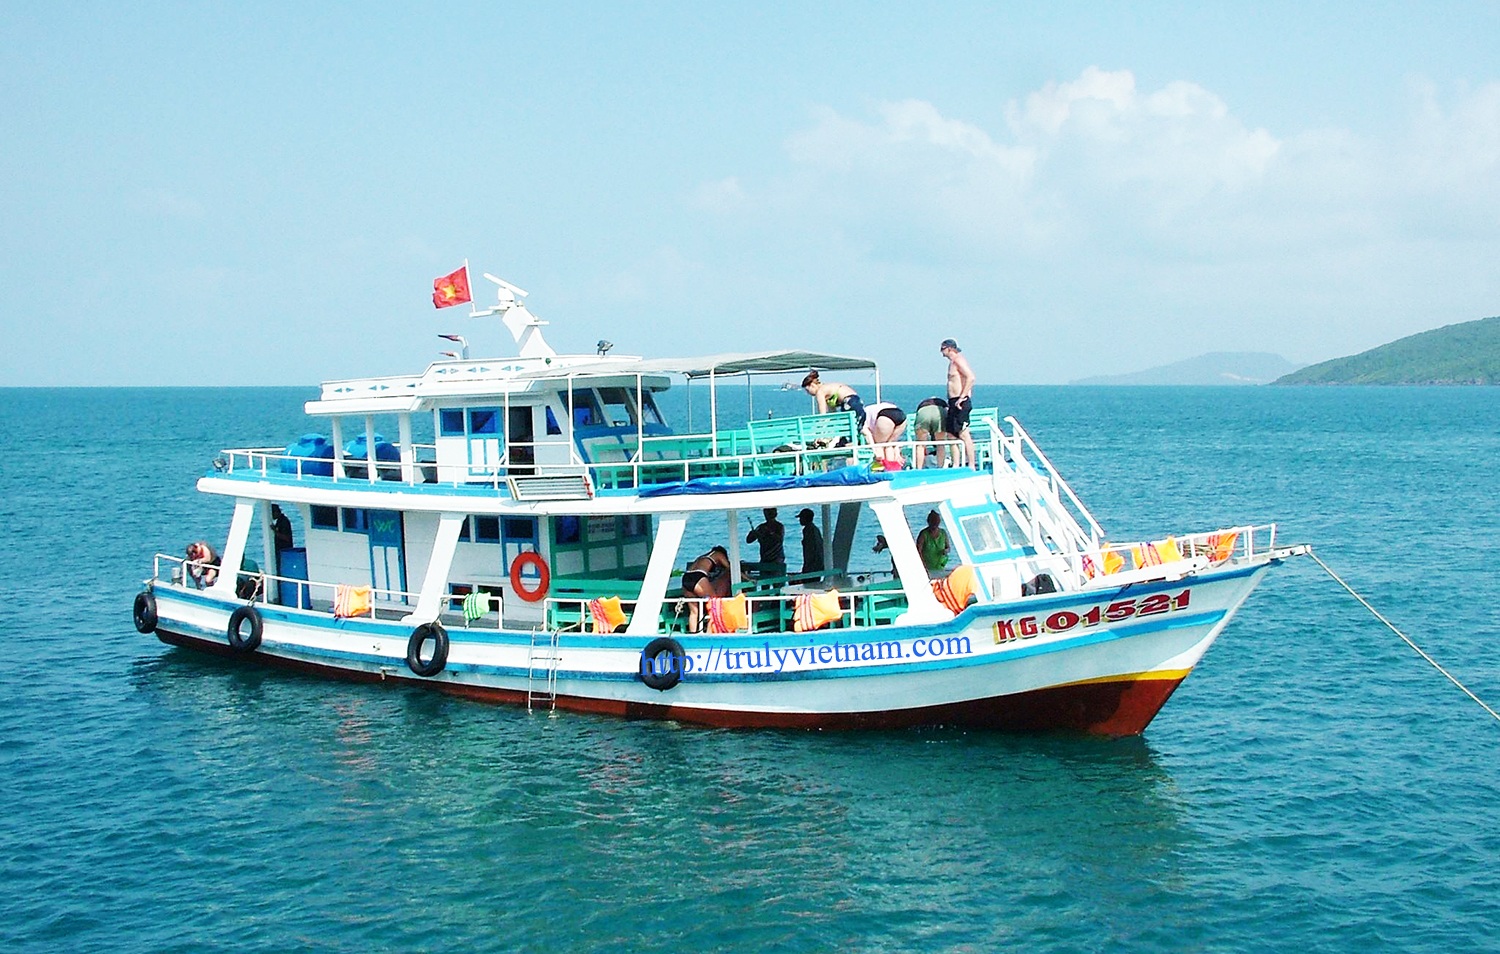 Boat Trip To the North of Phu Quoc